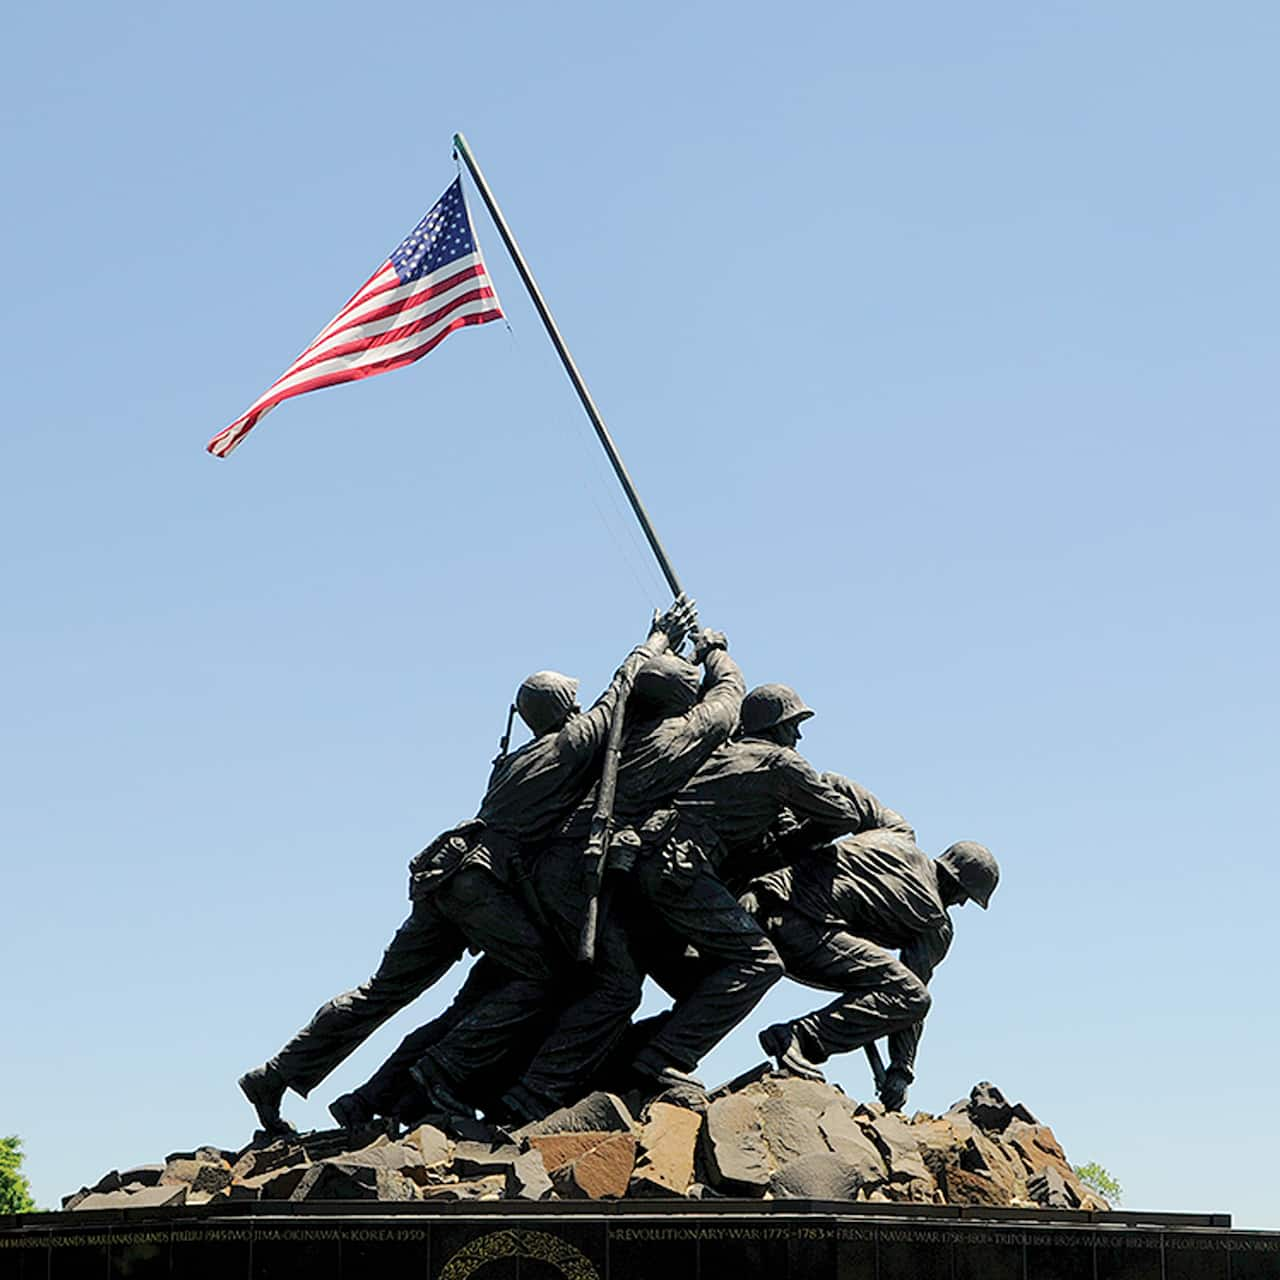 The statue of U.S. soldiers raising the flag at Iwo Jima